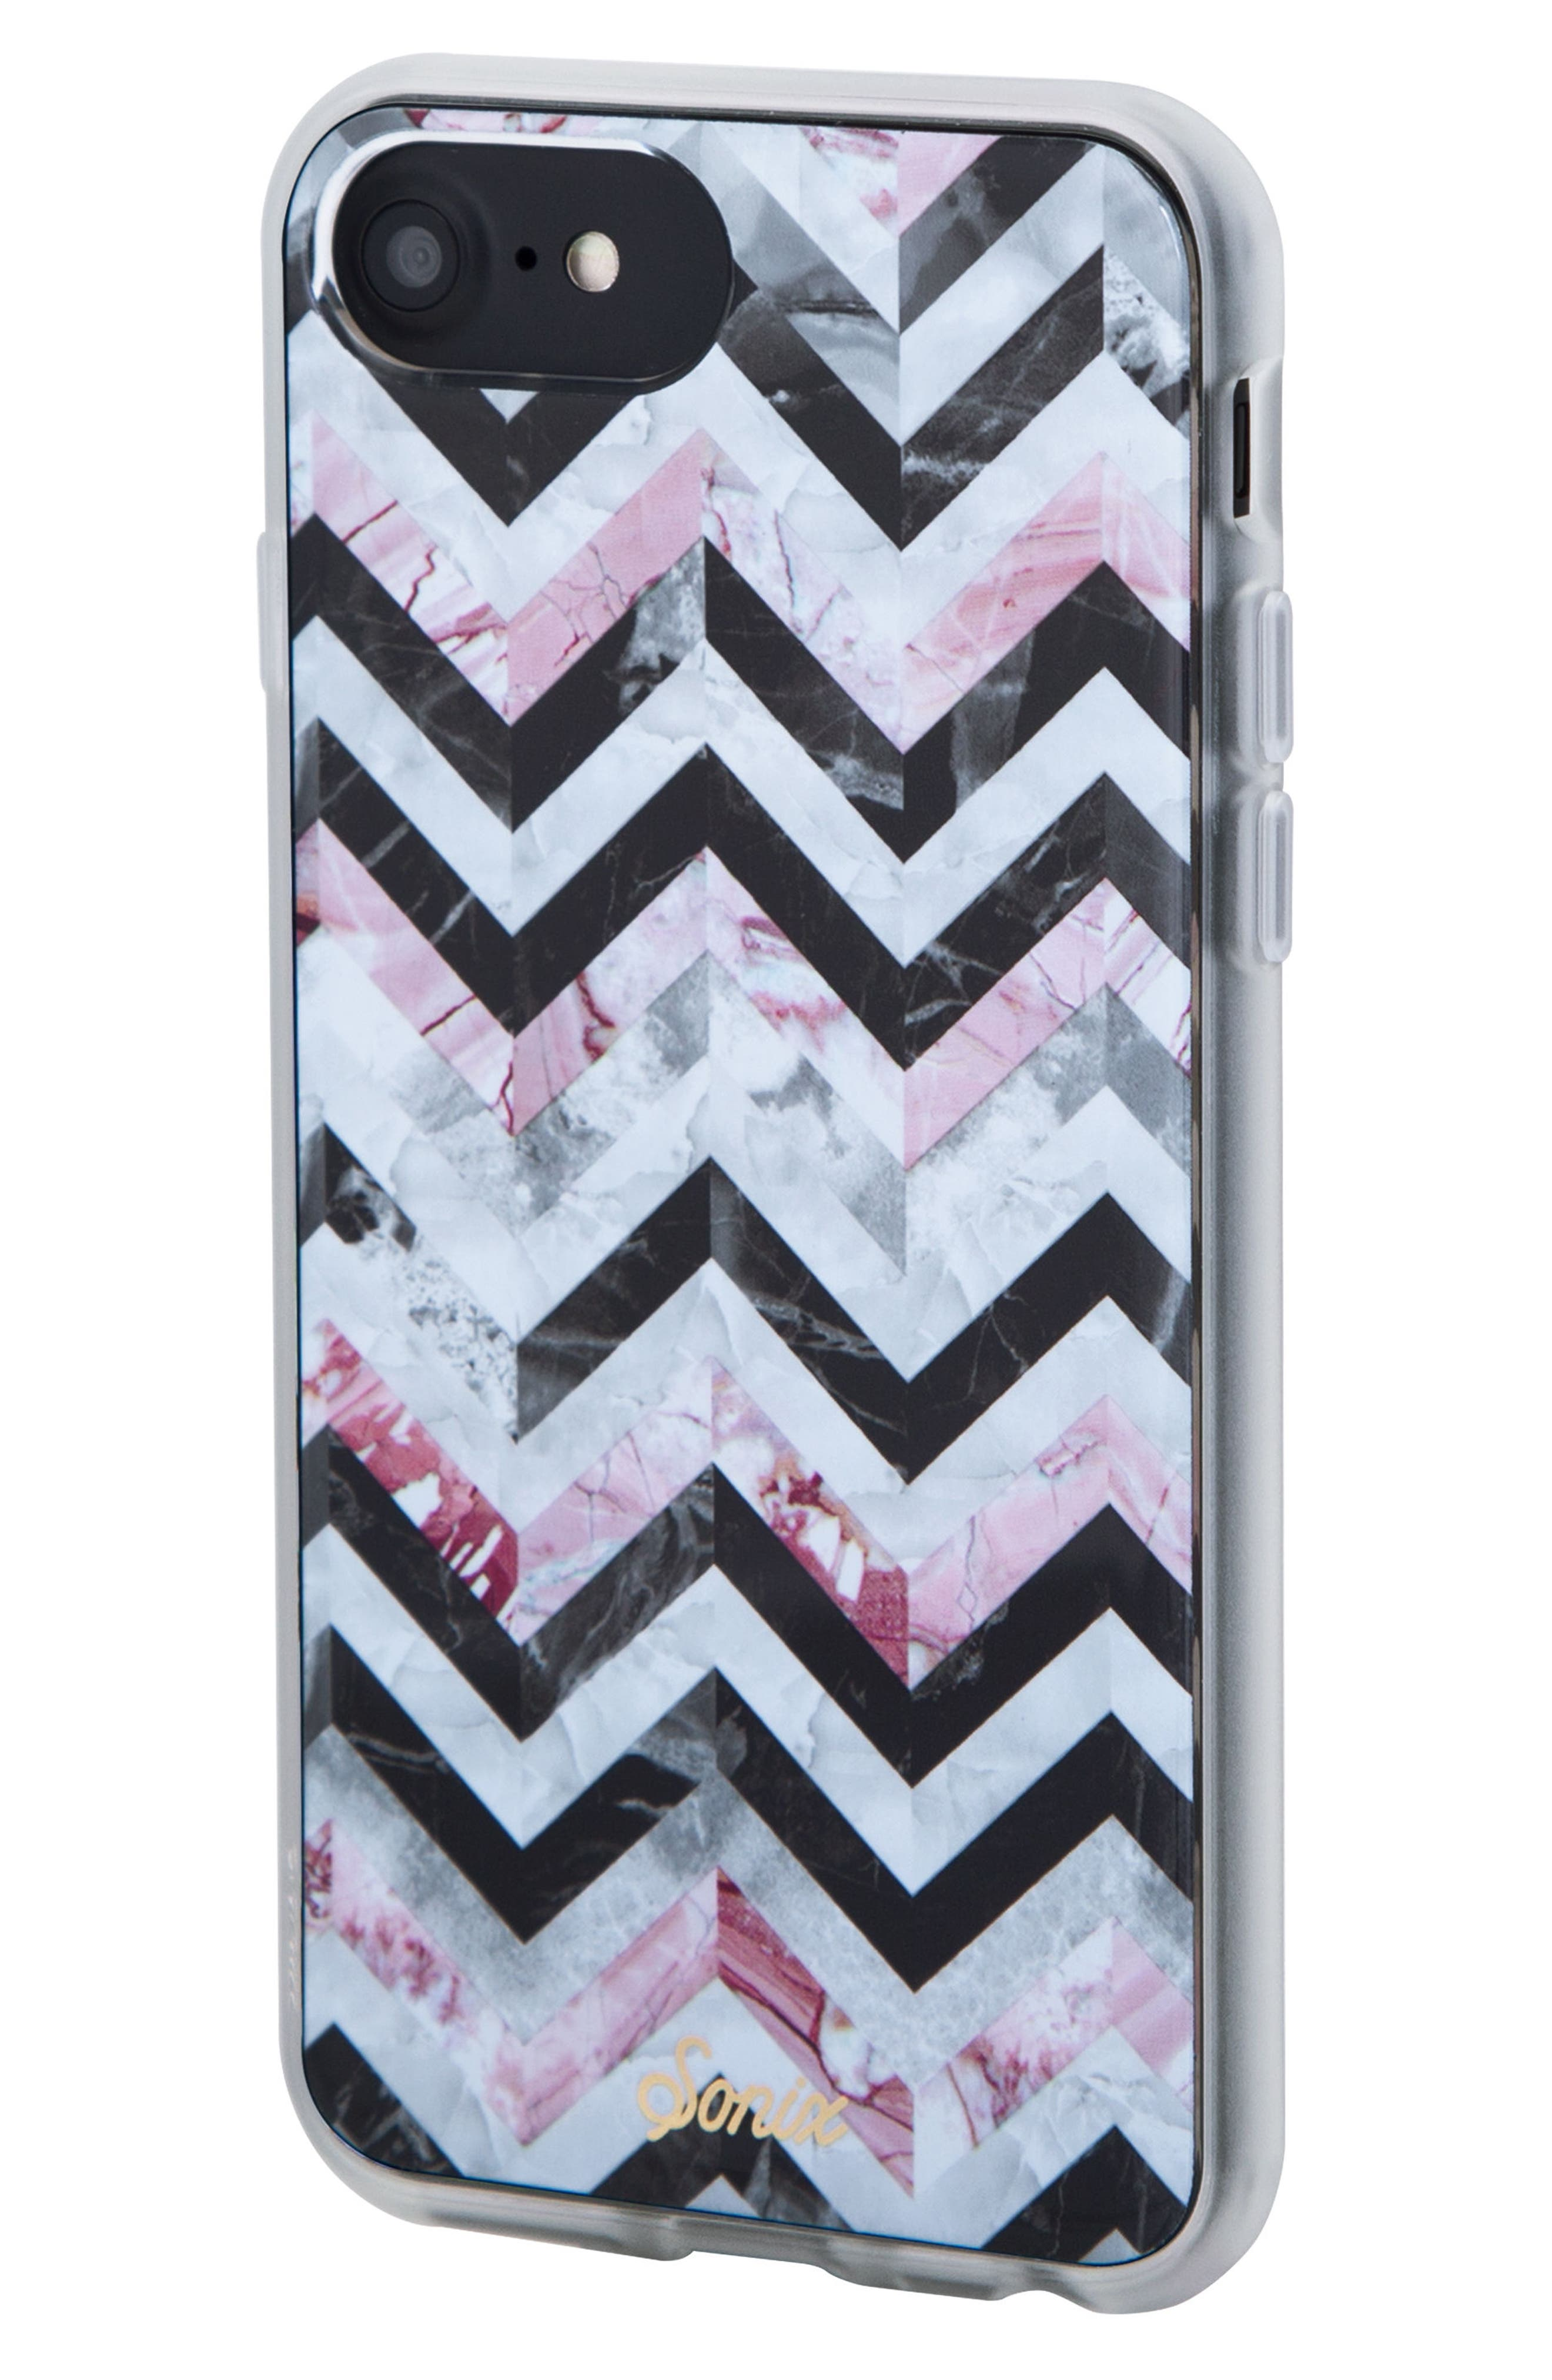 City Tile iPhone 6/6s/7/8 & 6/6s/7/8 Plus Case,                             Alternate thumbnail 2, color,                             BLACK/ MARBLE